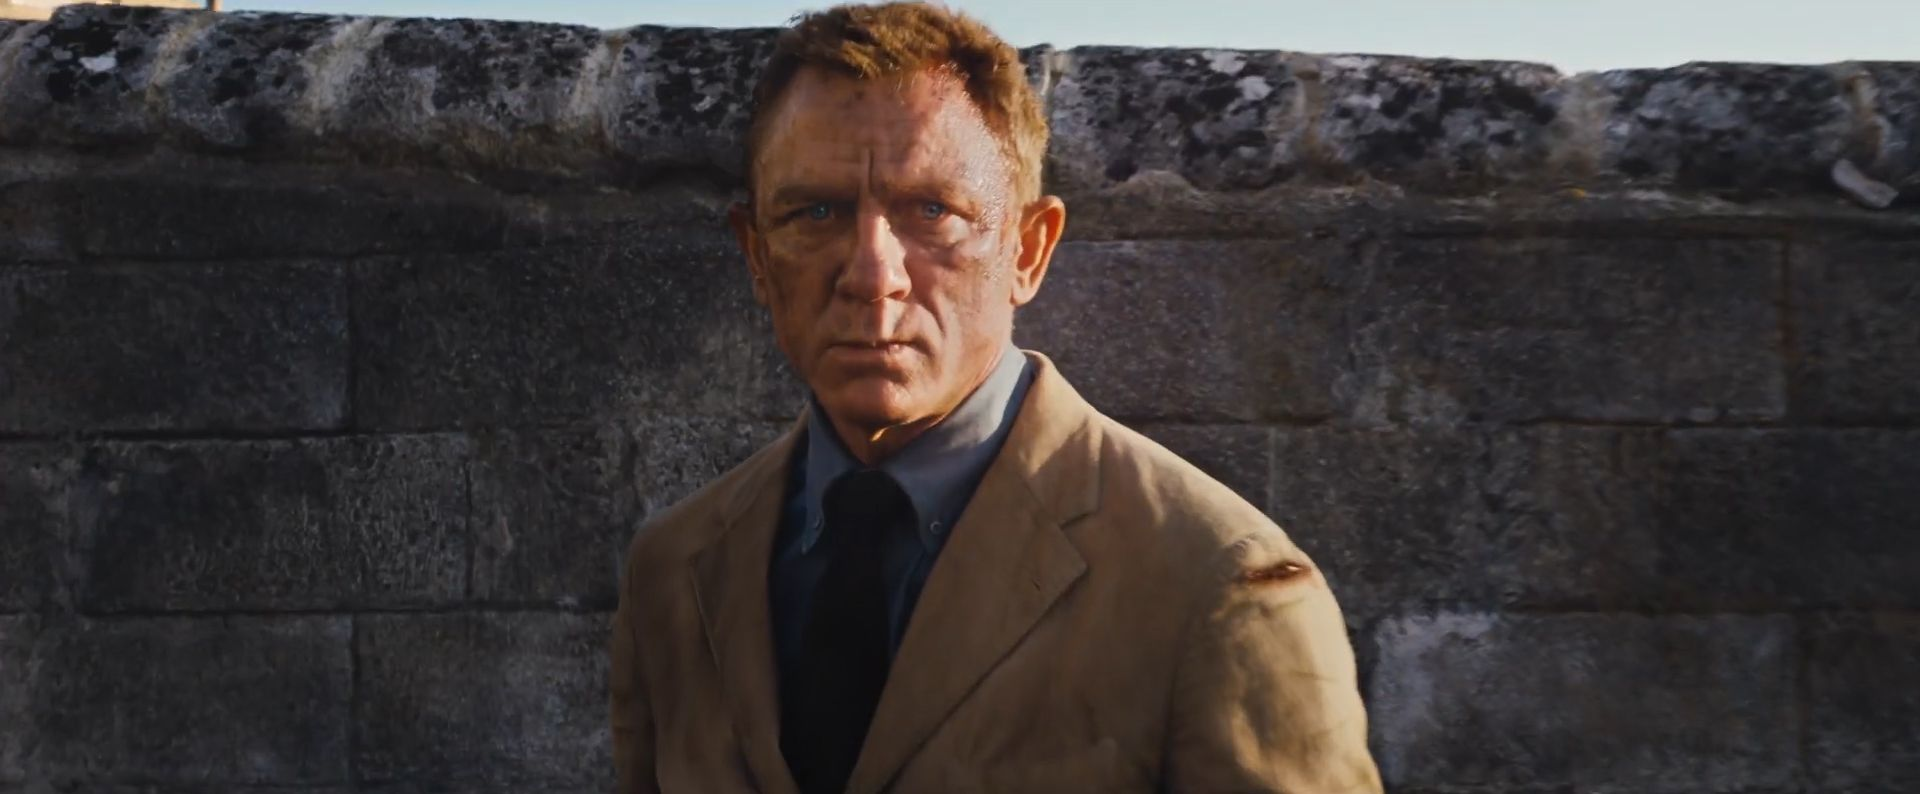 James Bond's Daniel Craig reveals why he wasn't sure about returning for No Time to Die